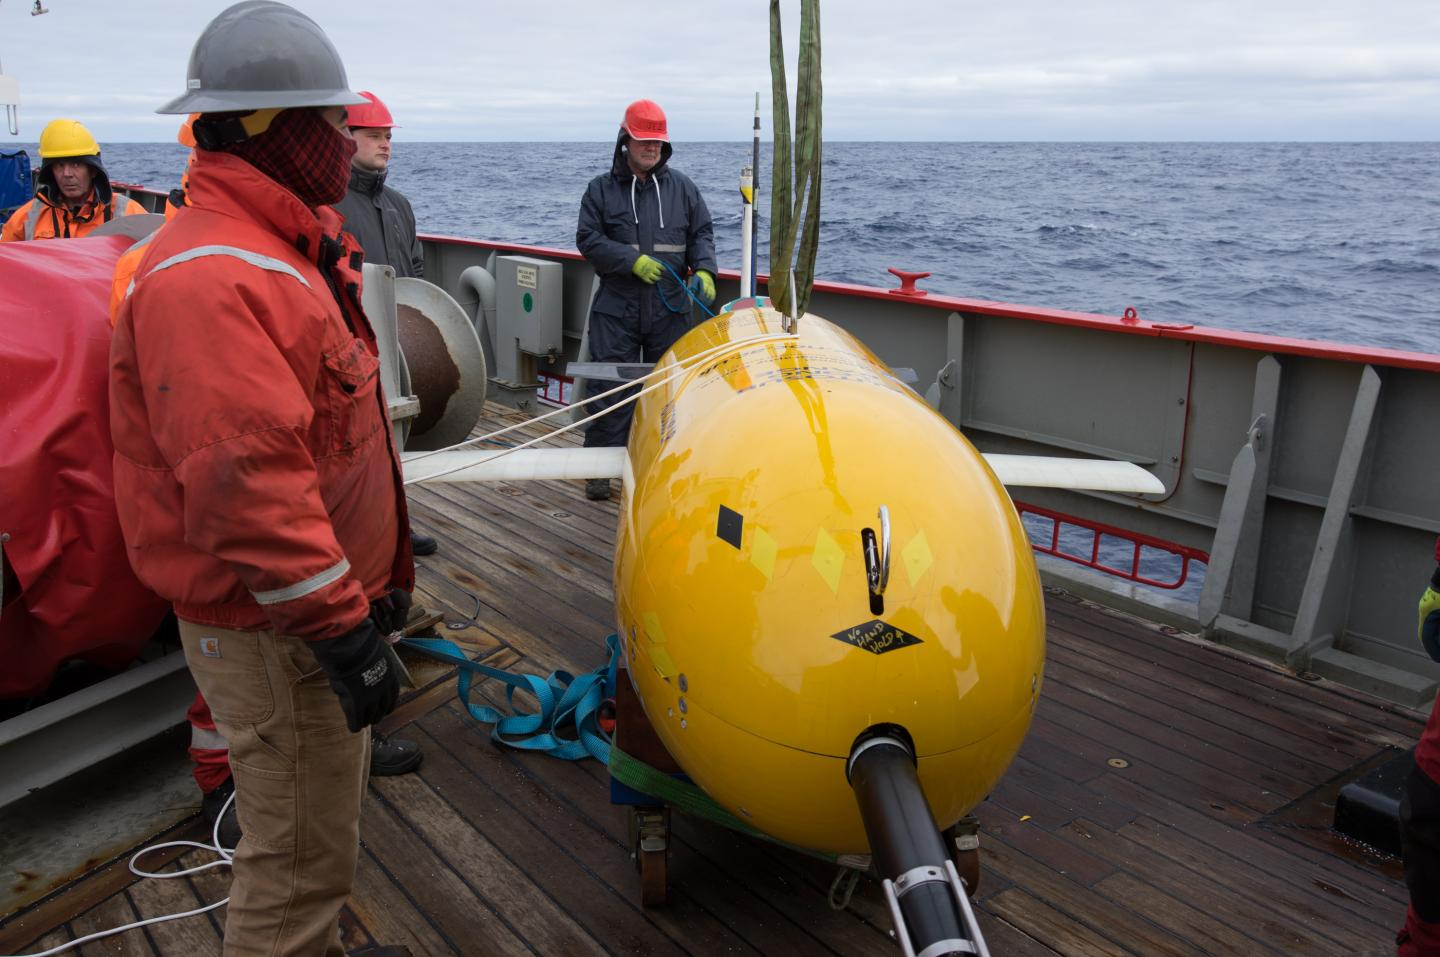 Boaty McBoatface Reveals Insights into Antarctic Heating